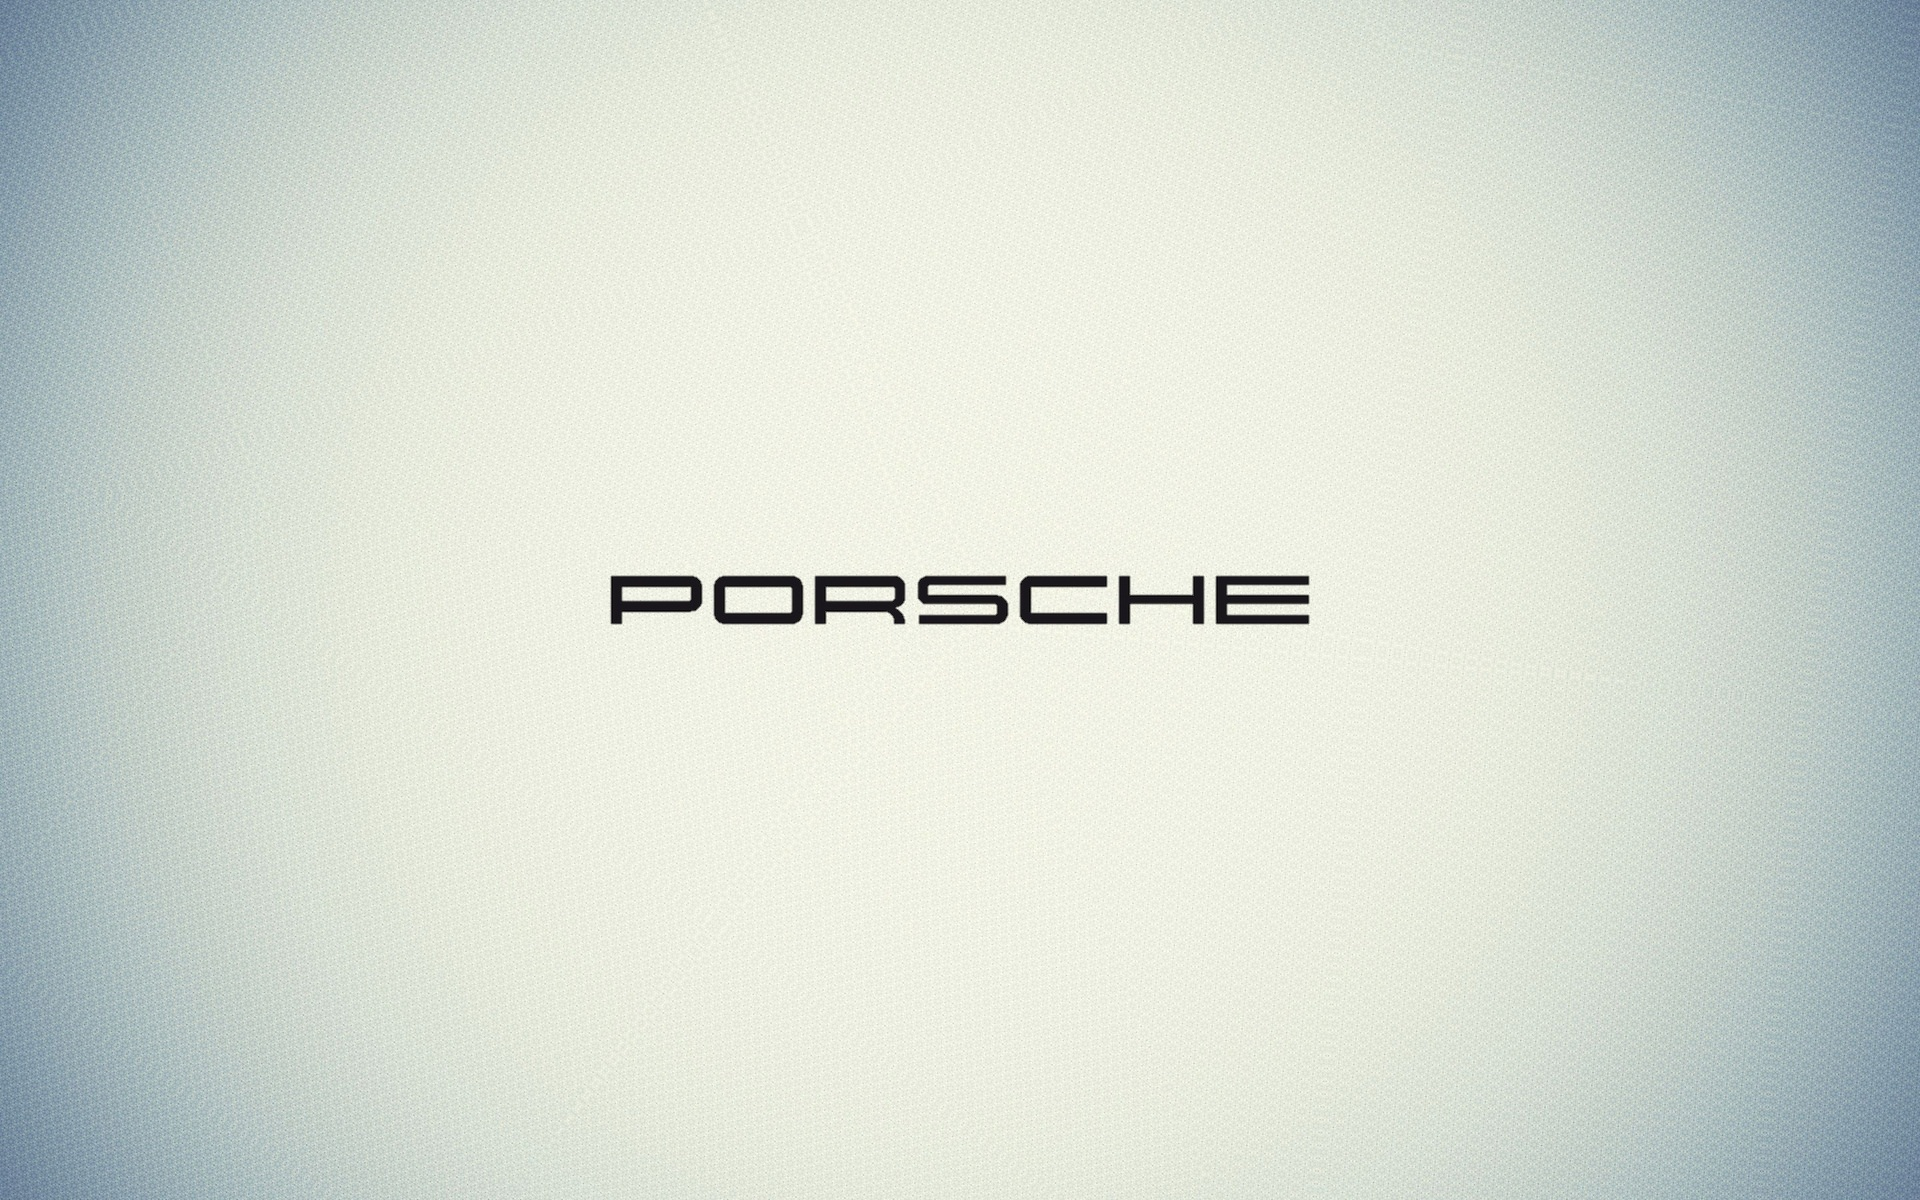 7 hd porsche logo wallpapers - Porsche Logo Wallpaper Iphone